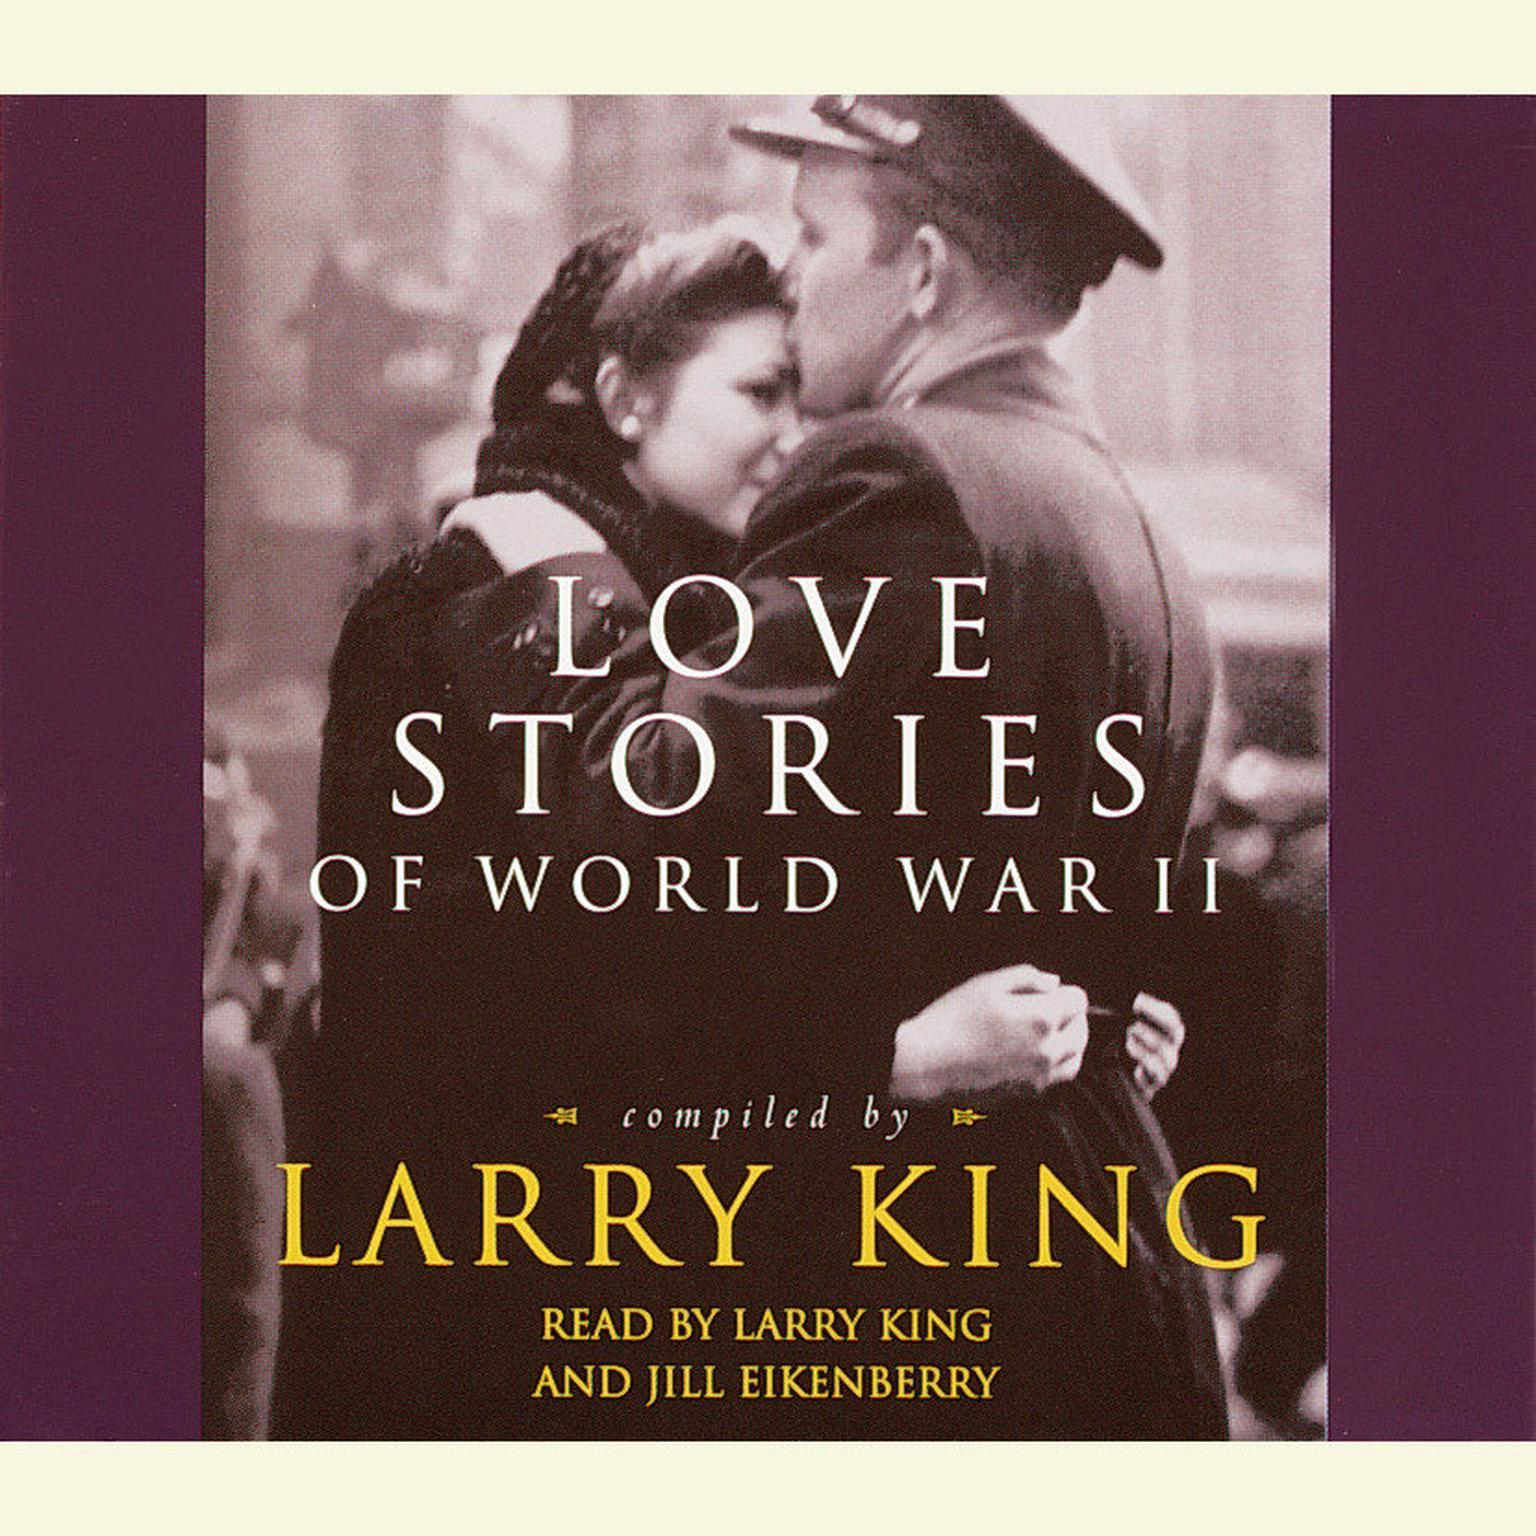 Printable Love Stories: Love Stories of World War II Audiobook Cover Art